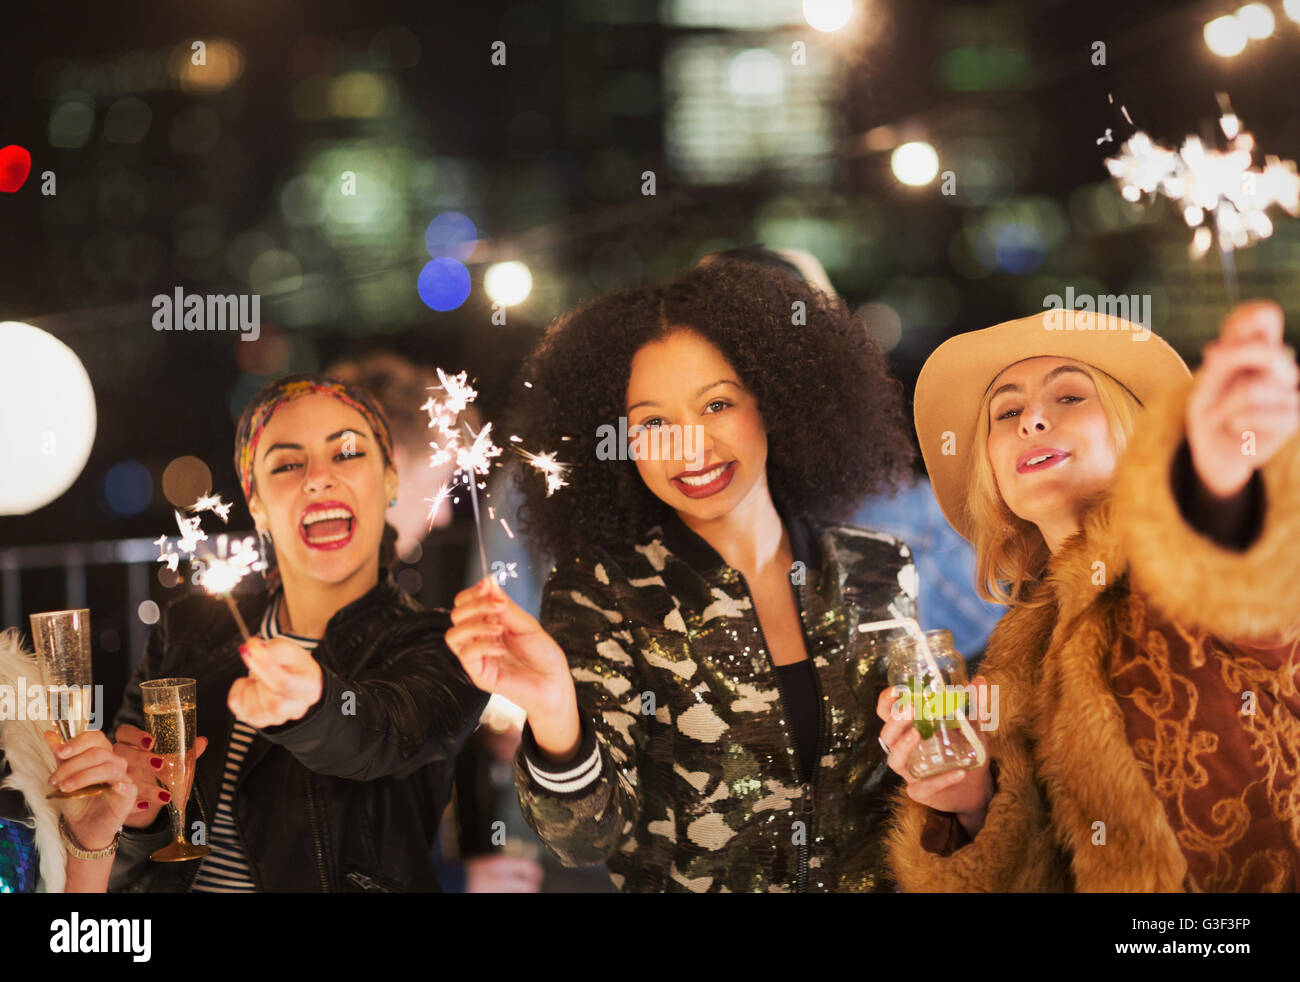 Portrait enthusiastic young women waving sparklers at party - Stock Image